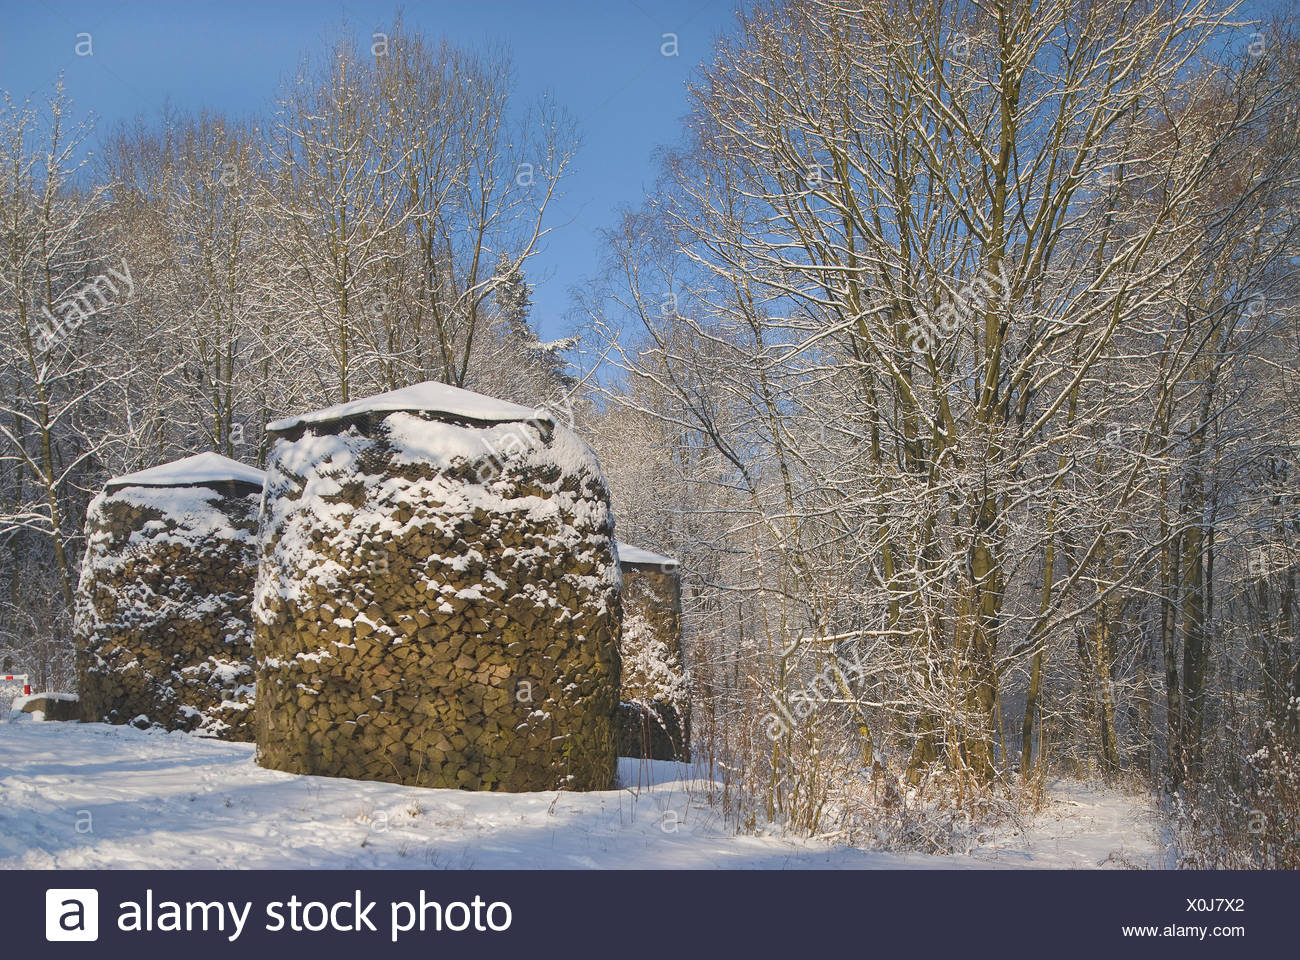 Snow-covered forest with covered piles of wood, timber industry - Stock Image